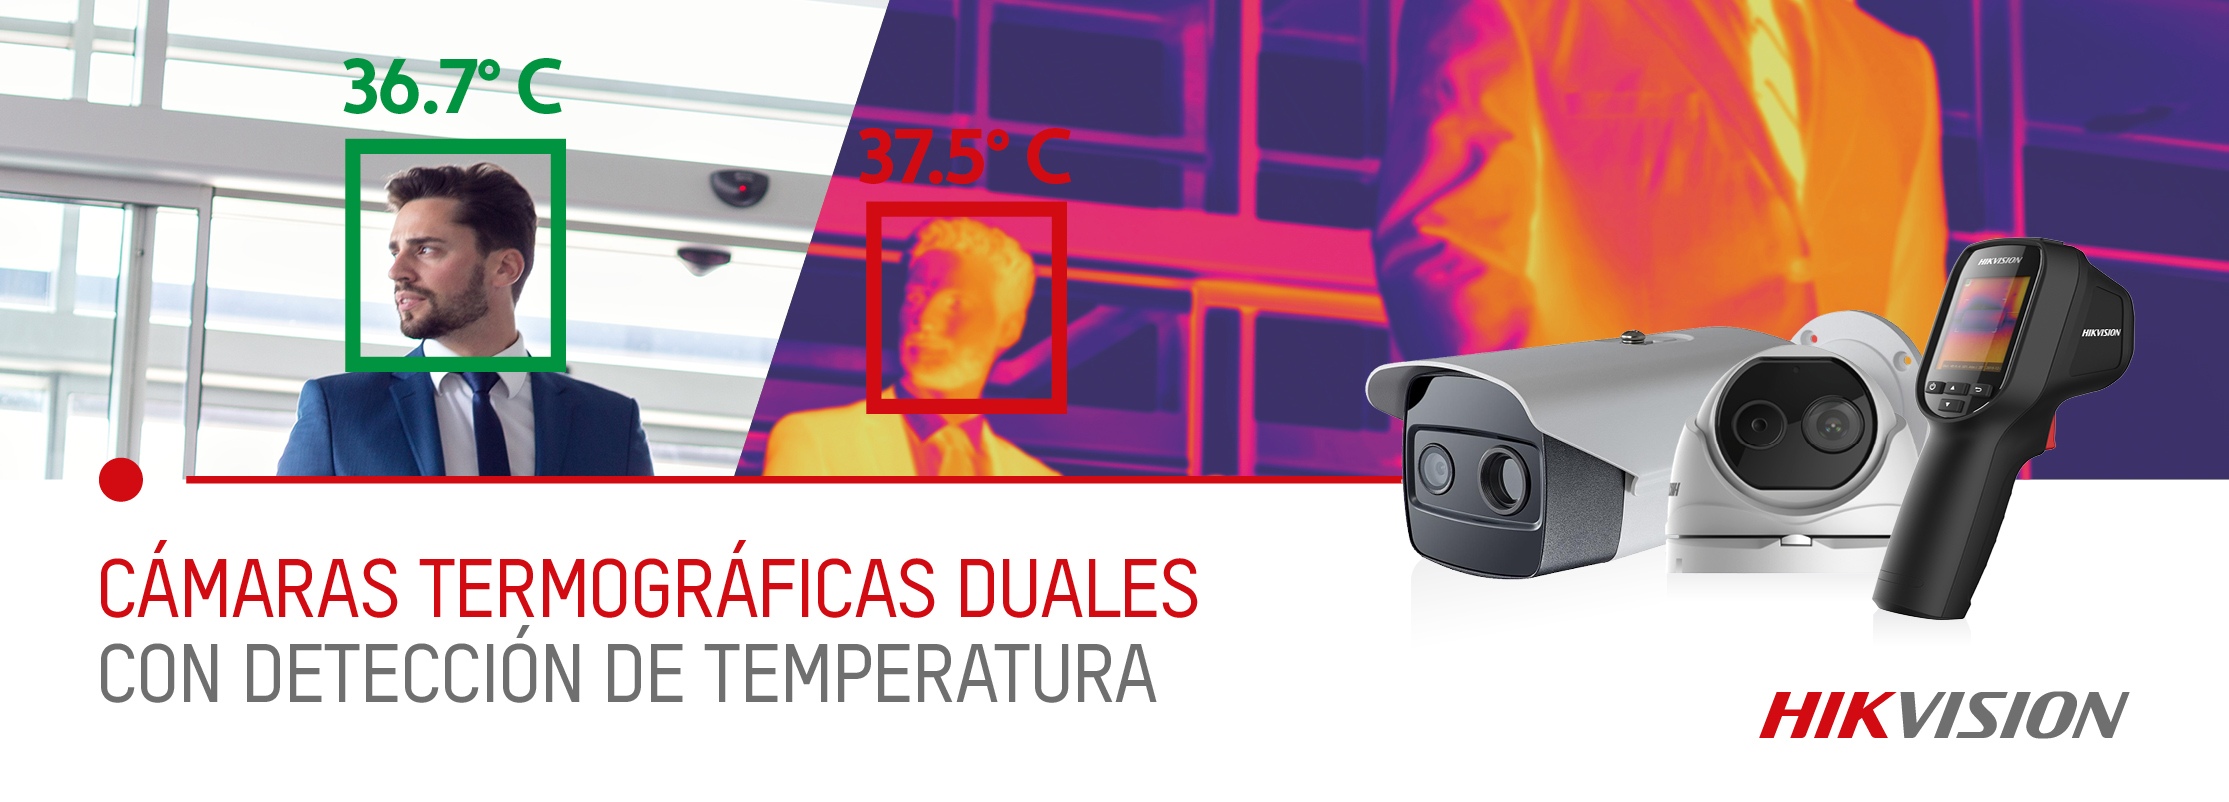 Thermal_Fever_banner_1070x385_march20_ES-5